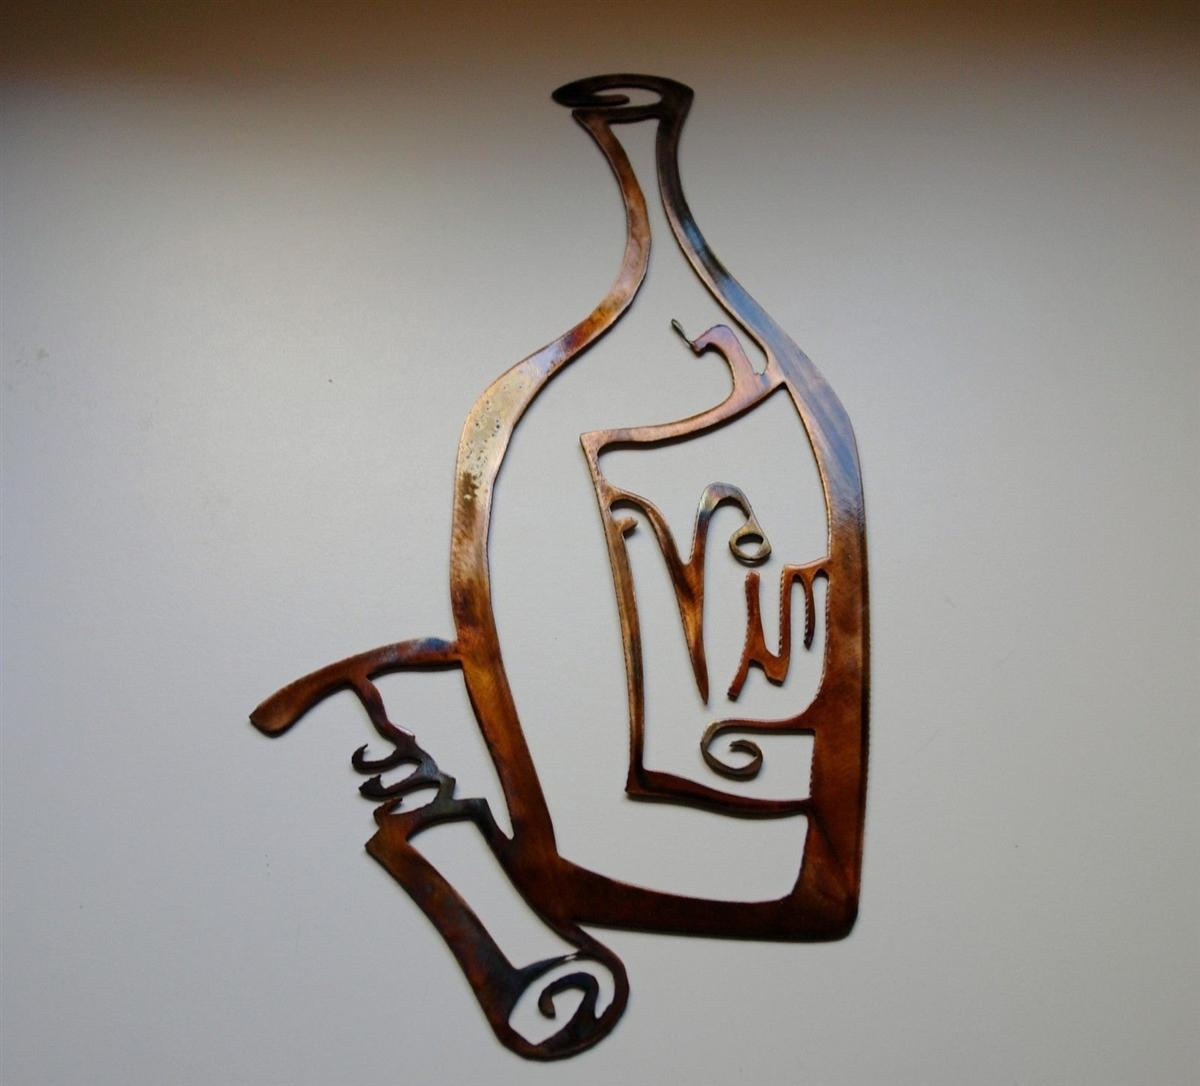 Vino! Metal Wall Art Decor, Wine Bottle And Opener Copper & Bronze Regarding Wine Metal Wall Art (Image 14 of 20)